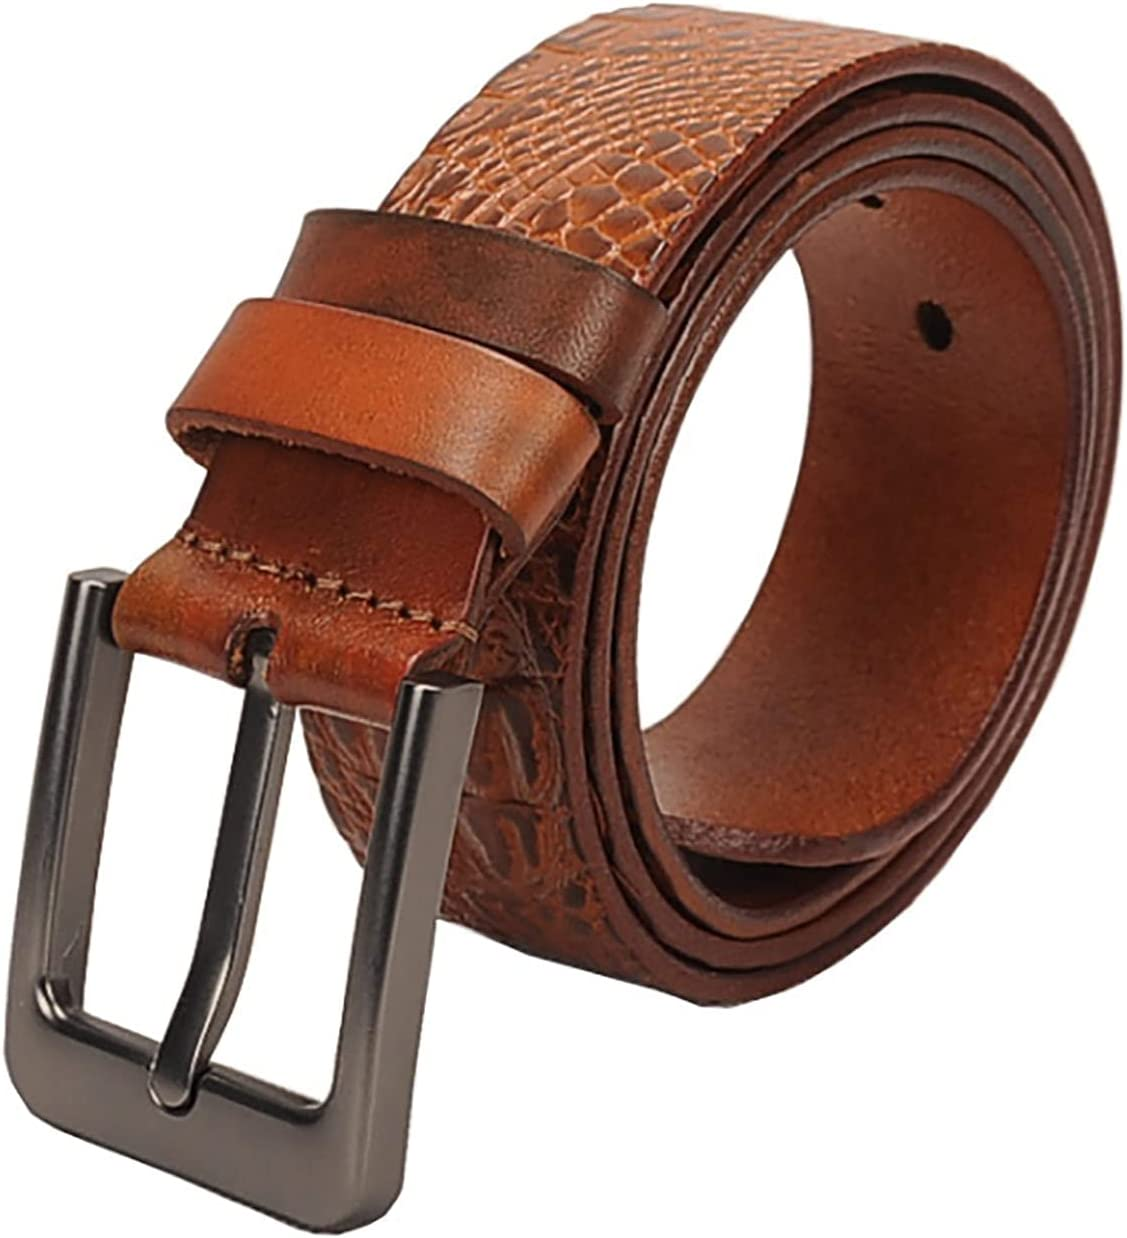 HFDJ First Layer Cowhide Belt Be Max 78% OFF Men's Max 57% OFF Crocodile Leather